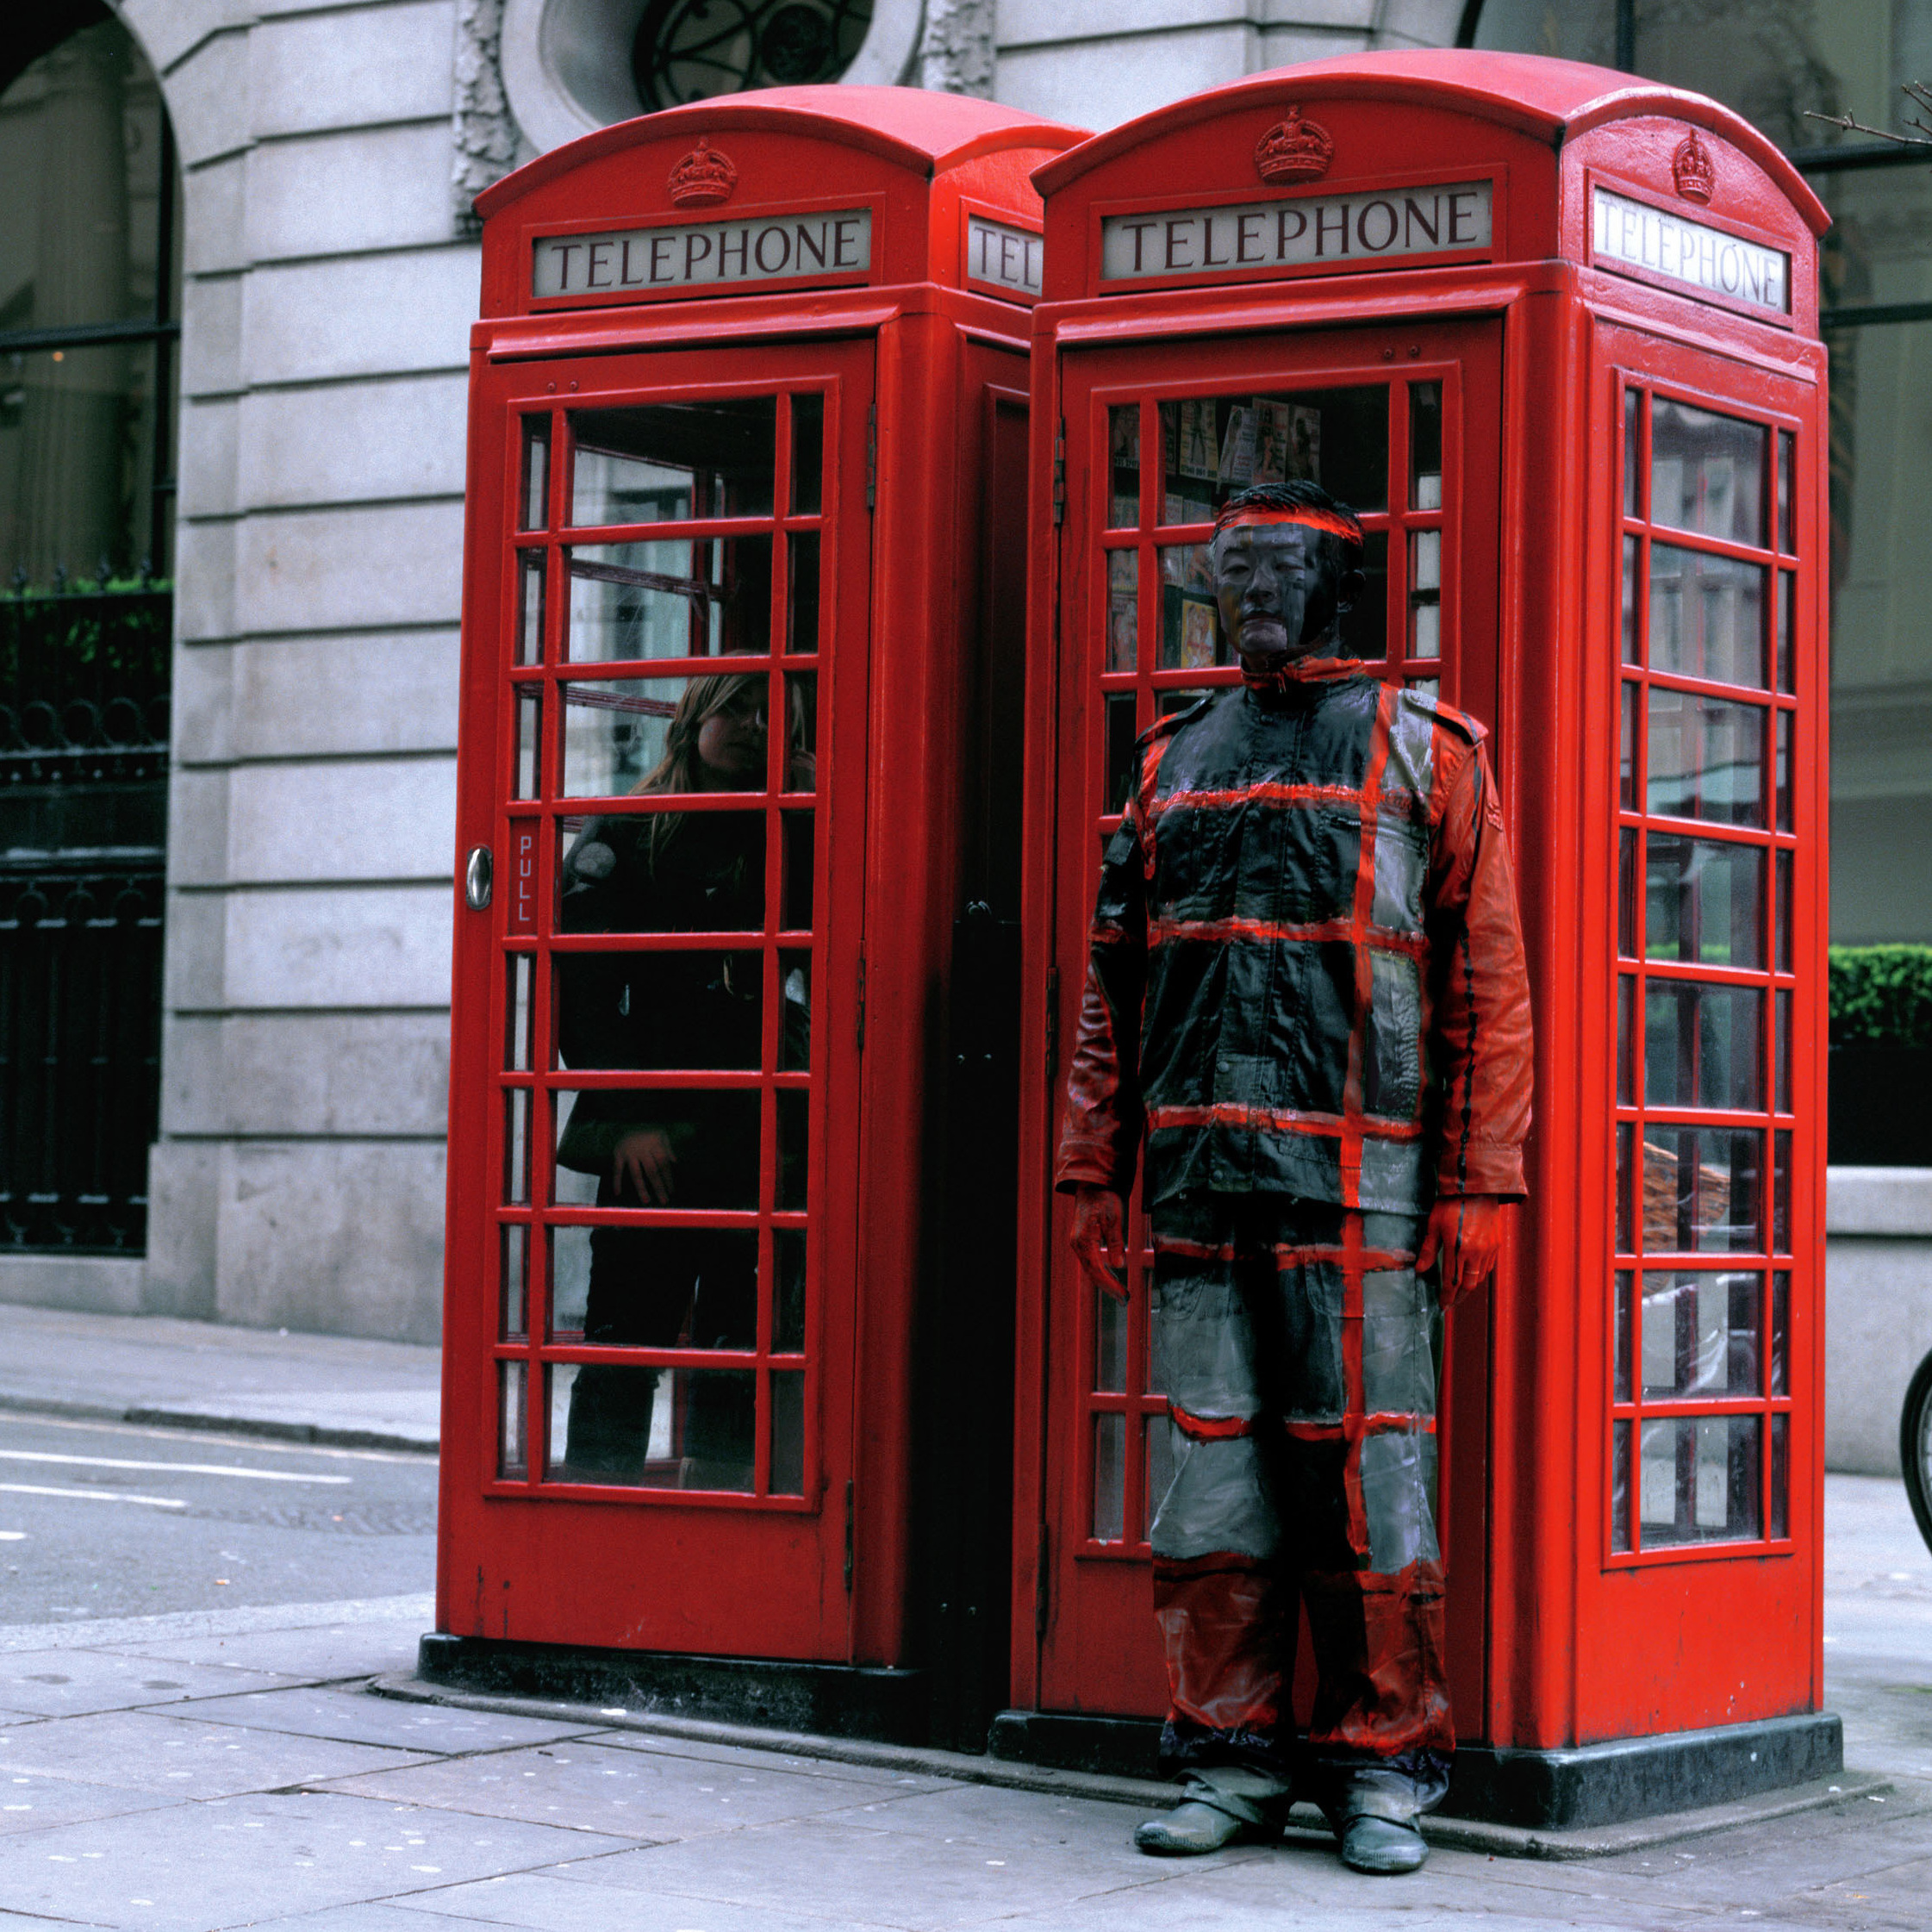 Hiding in the City No. 65 - Telephone Booth, 2008